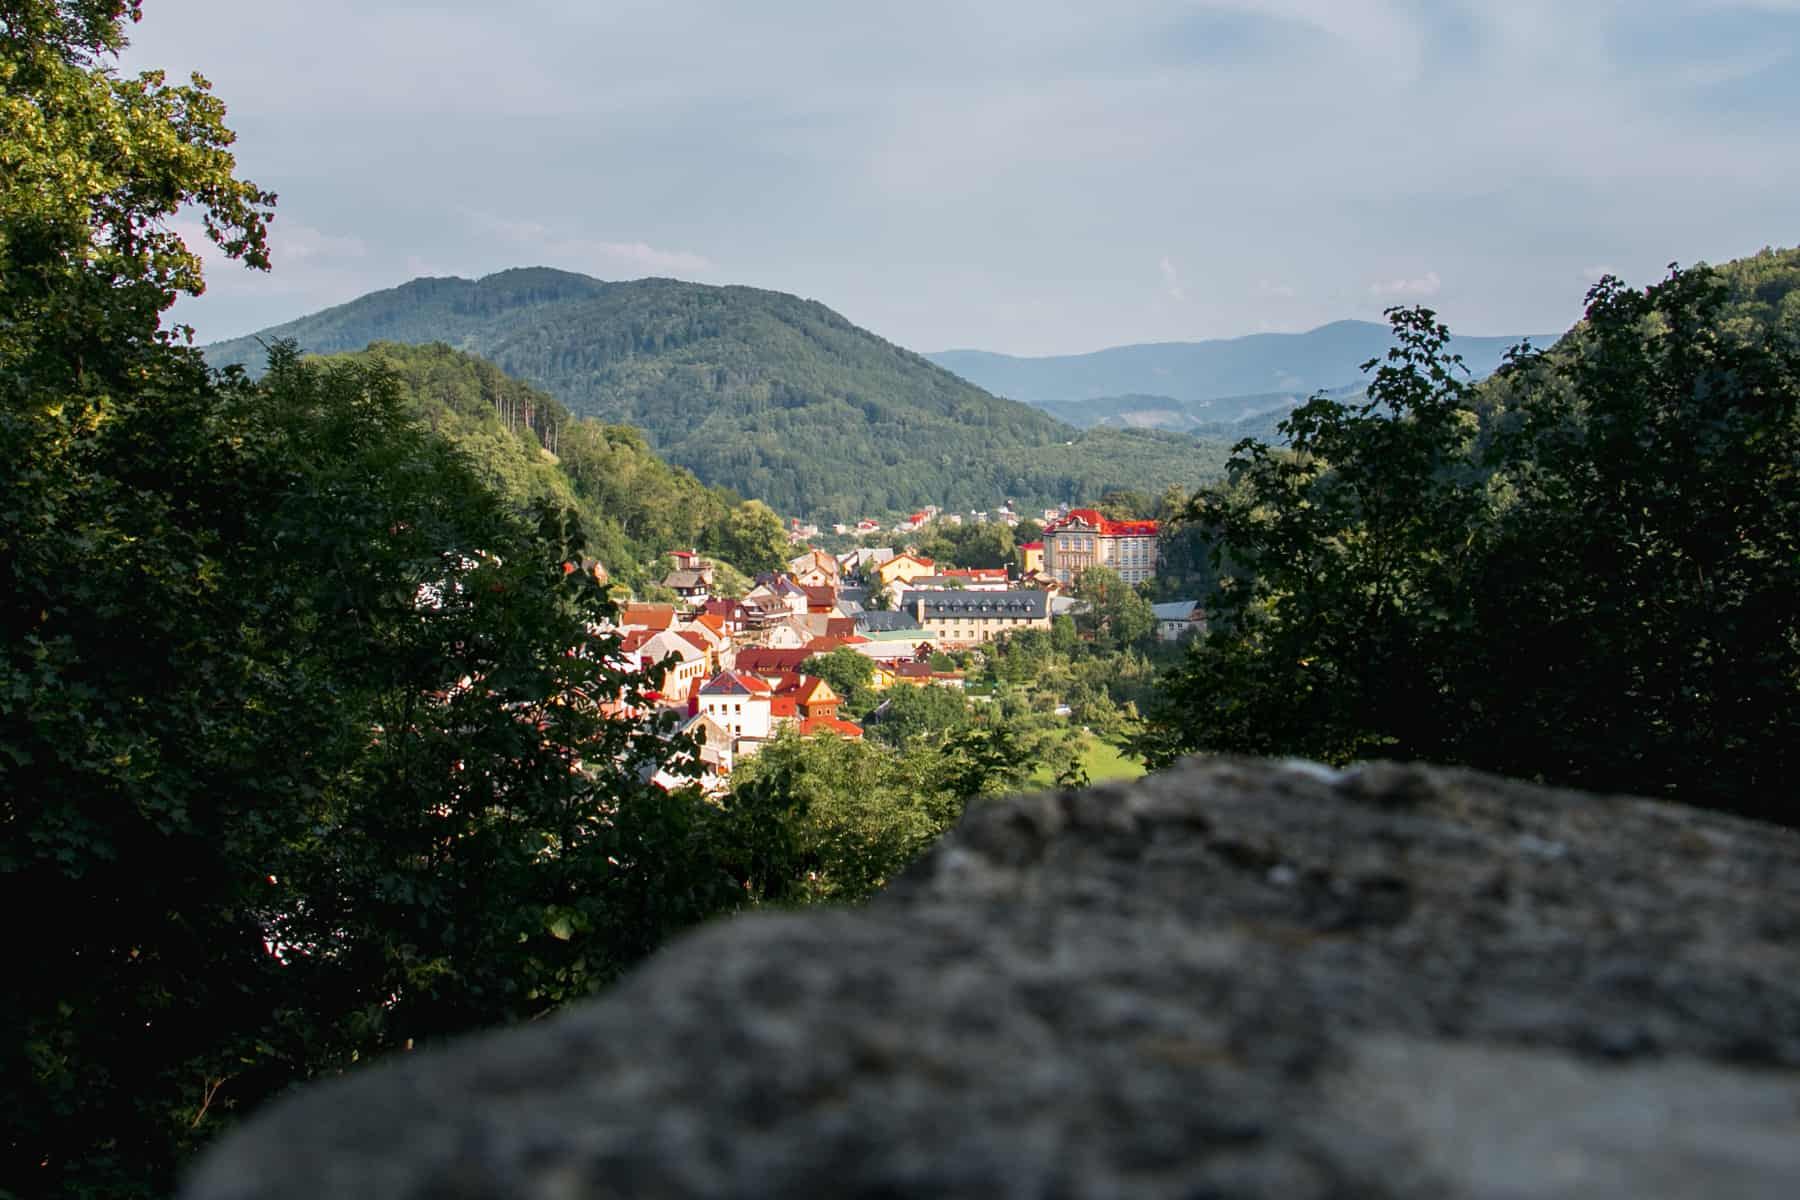 Looking over a rock at a village with red rooftops